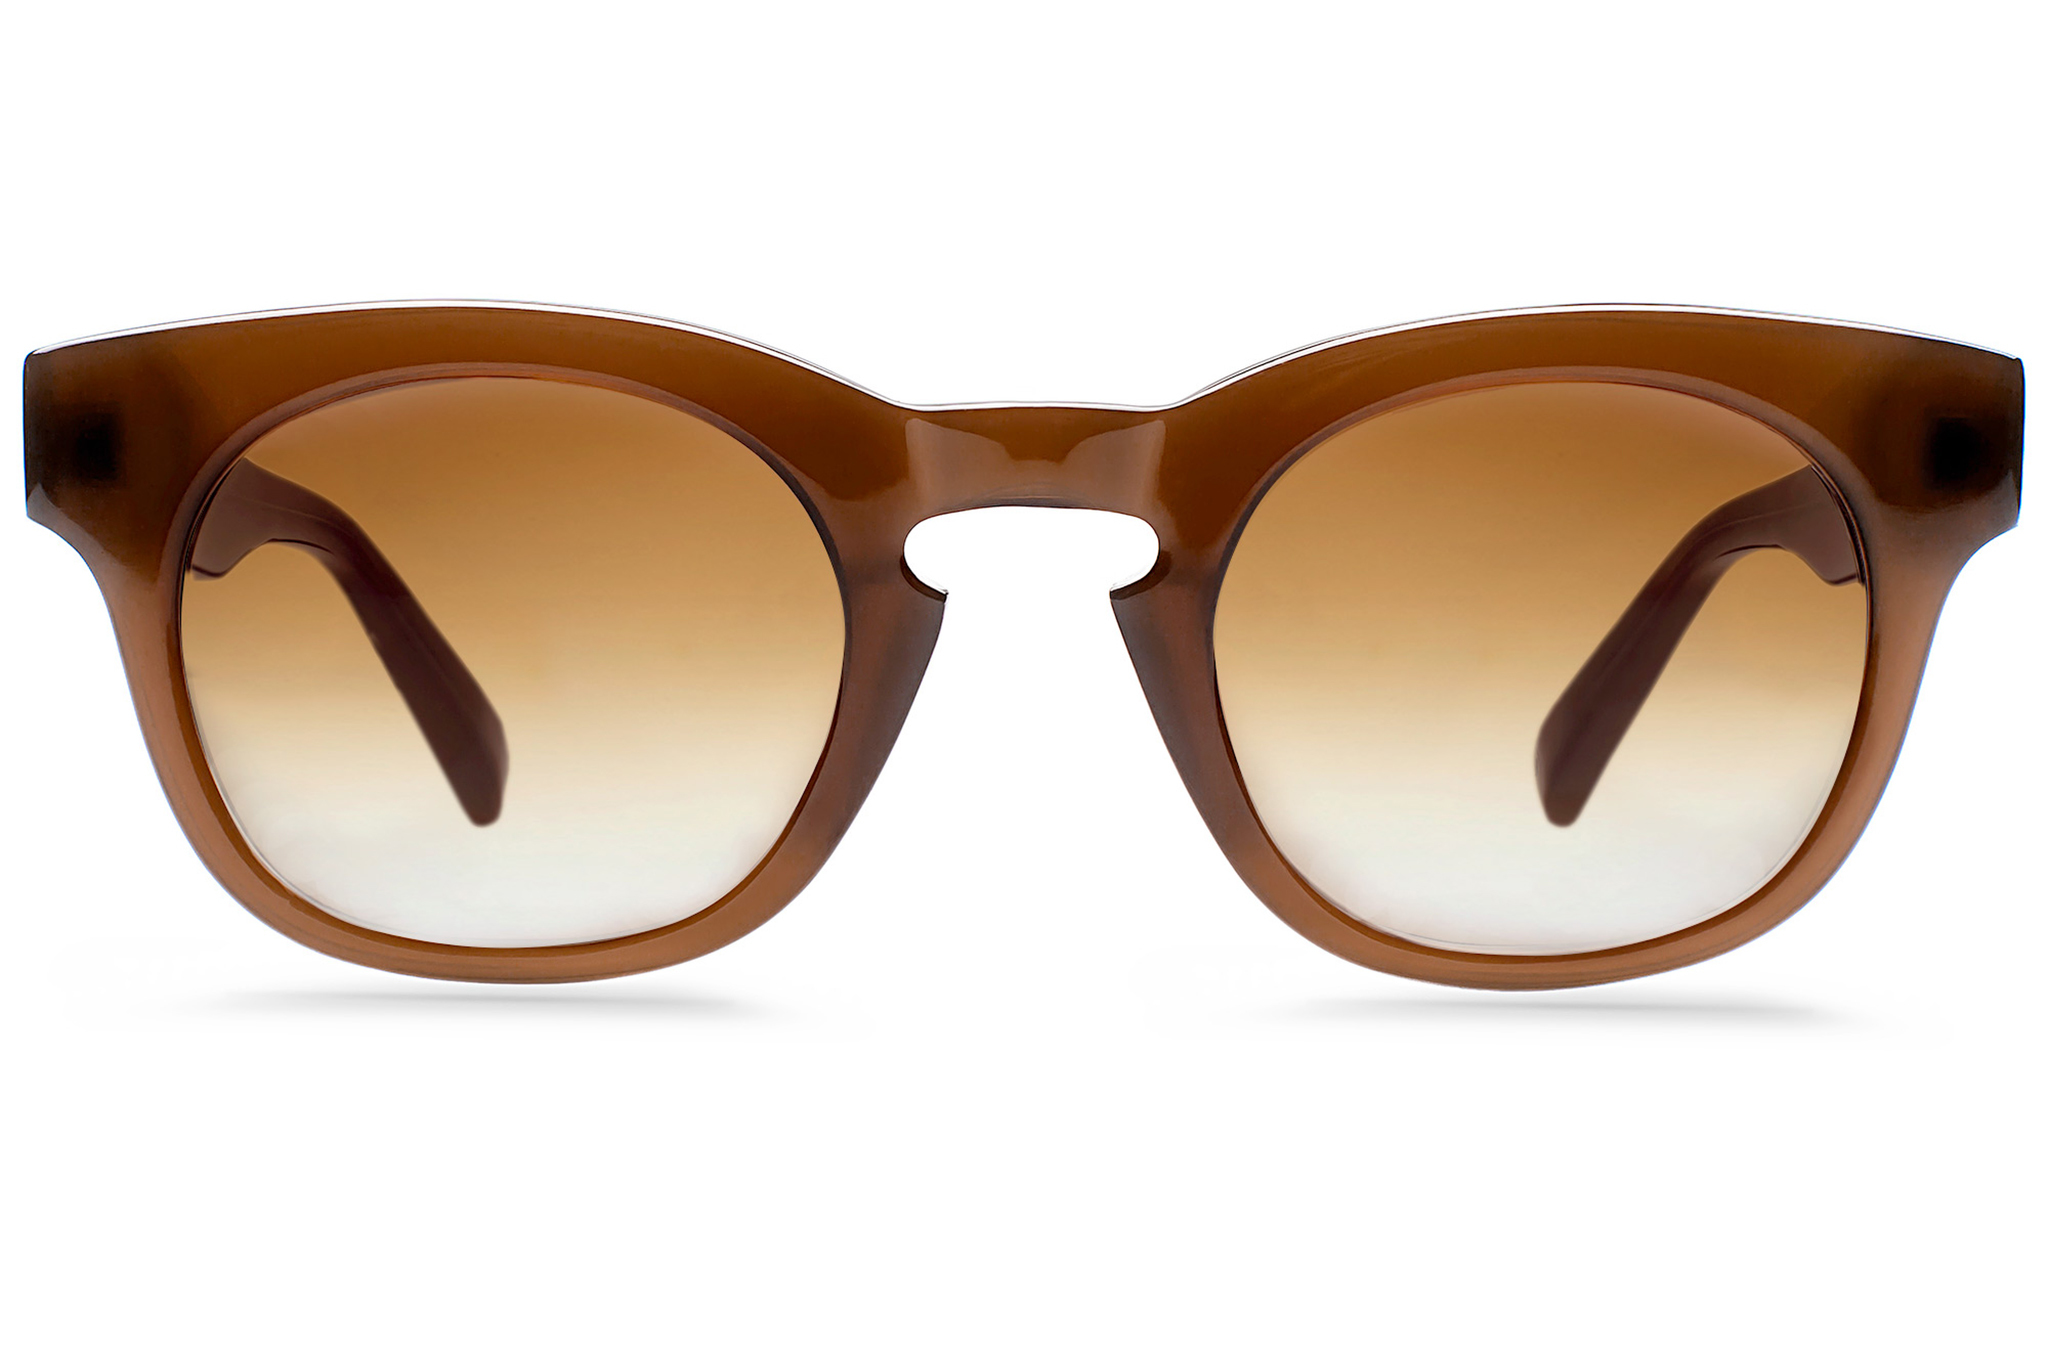 NYC's top sunglasses stores